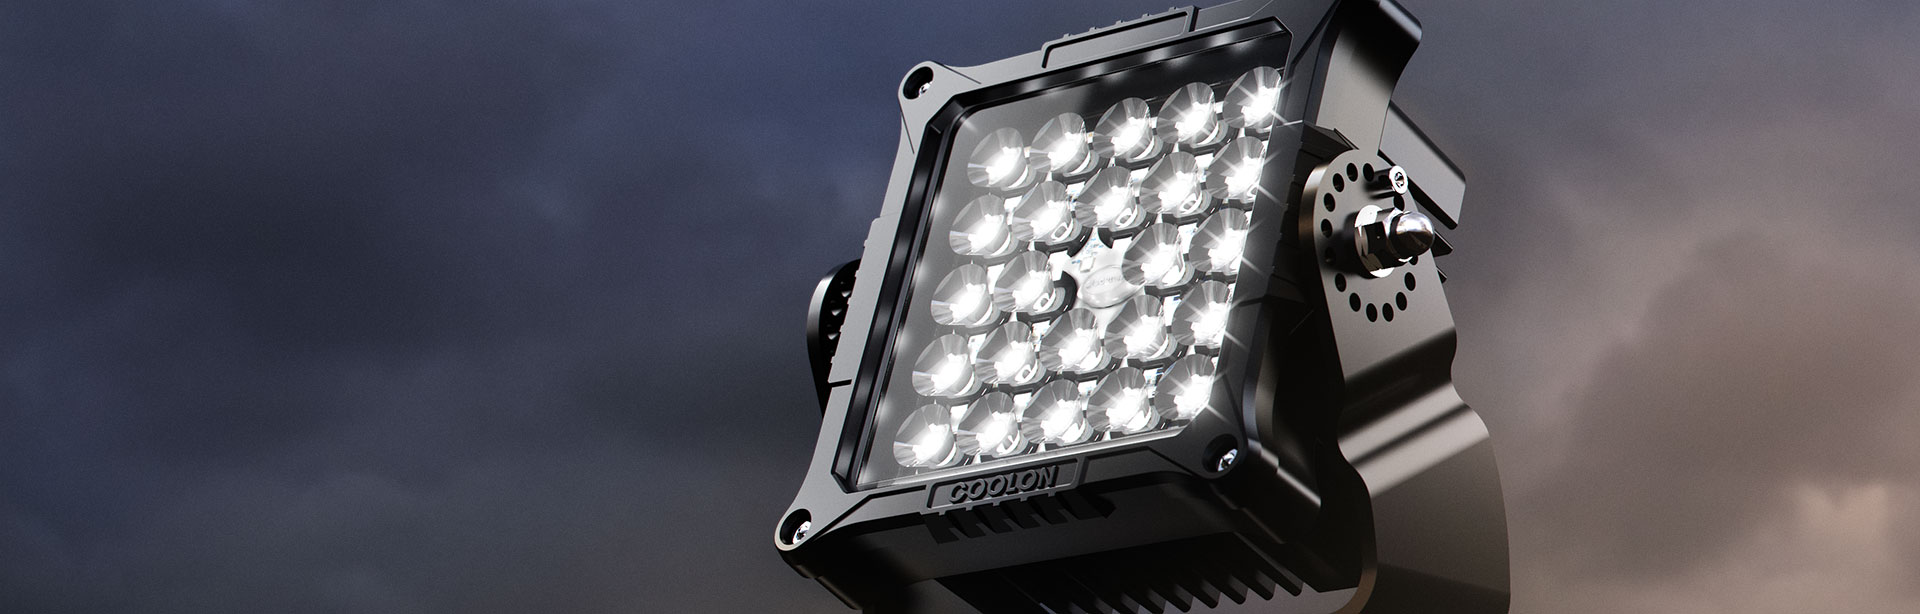 The CP24 LED Light offers the most robust and heavy-duty lighting solution for tough mining machinery. It delivershigh power light in the most demanding environments.